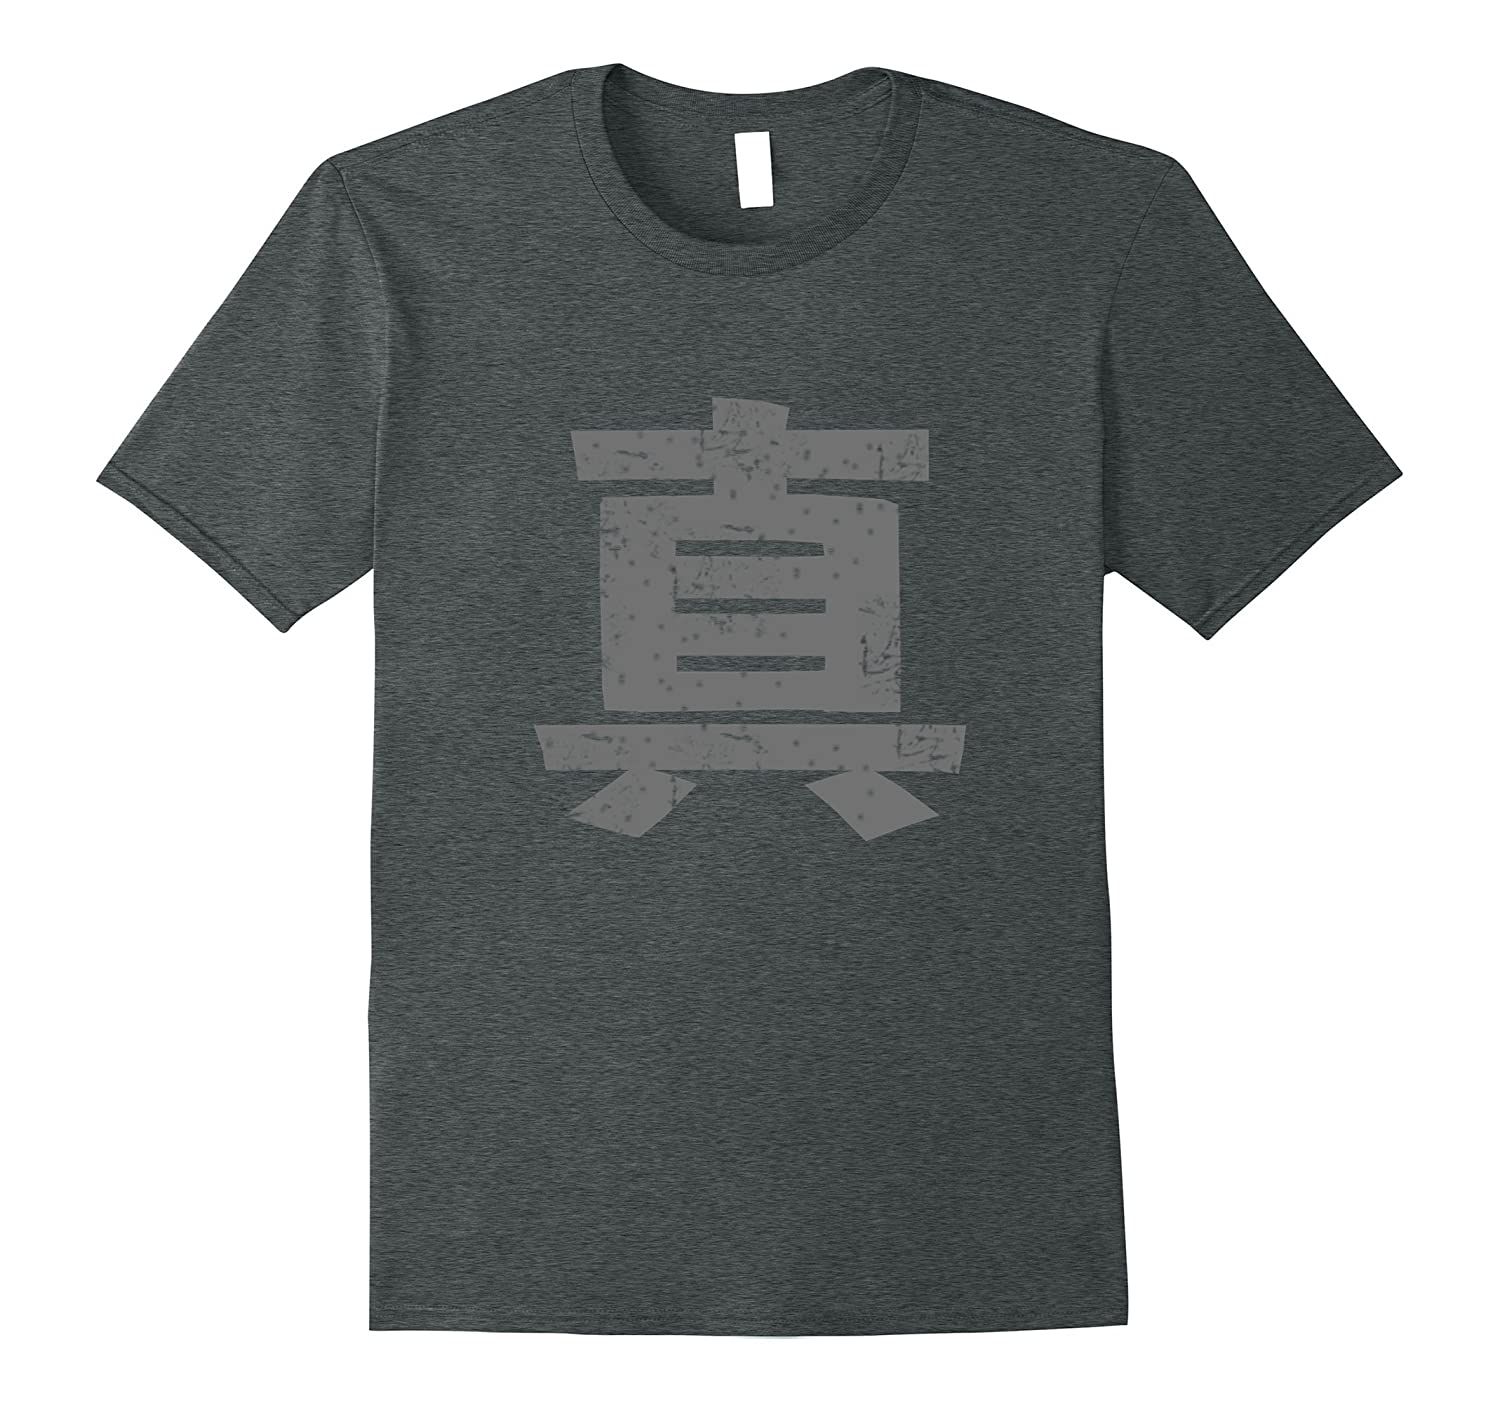 Japanese T-Shirt with Kanji for